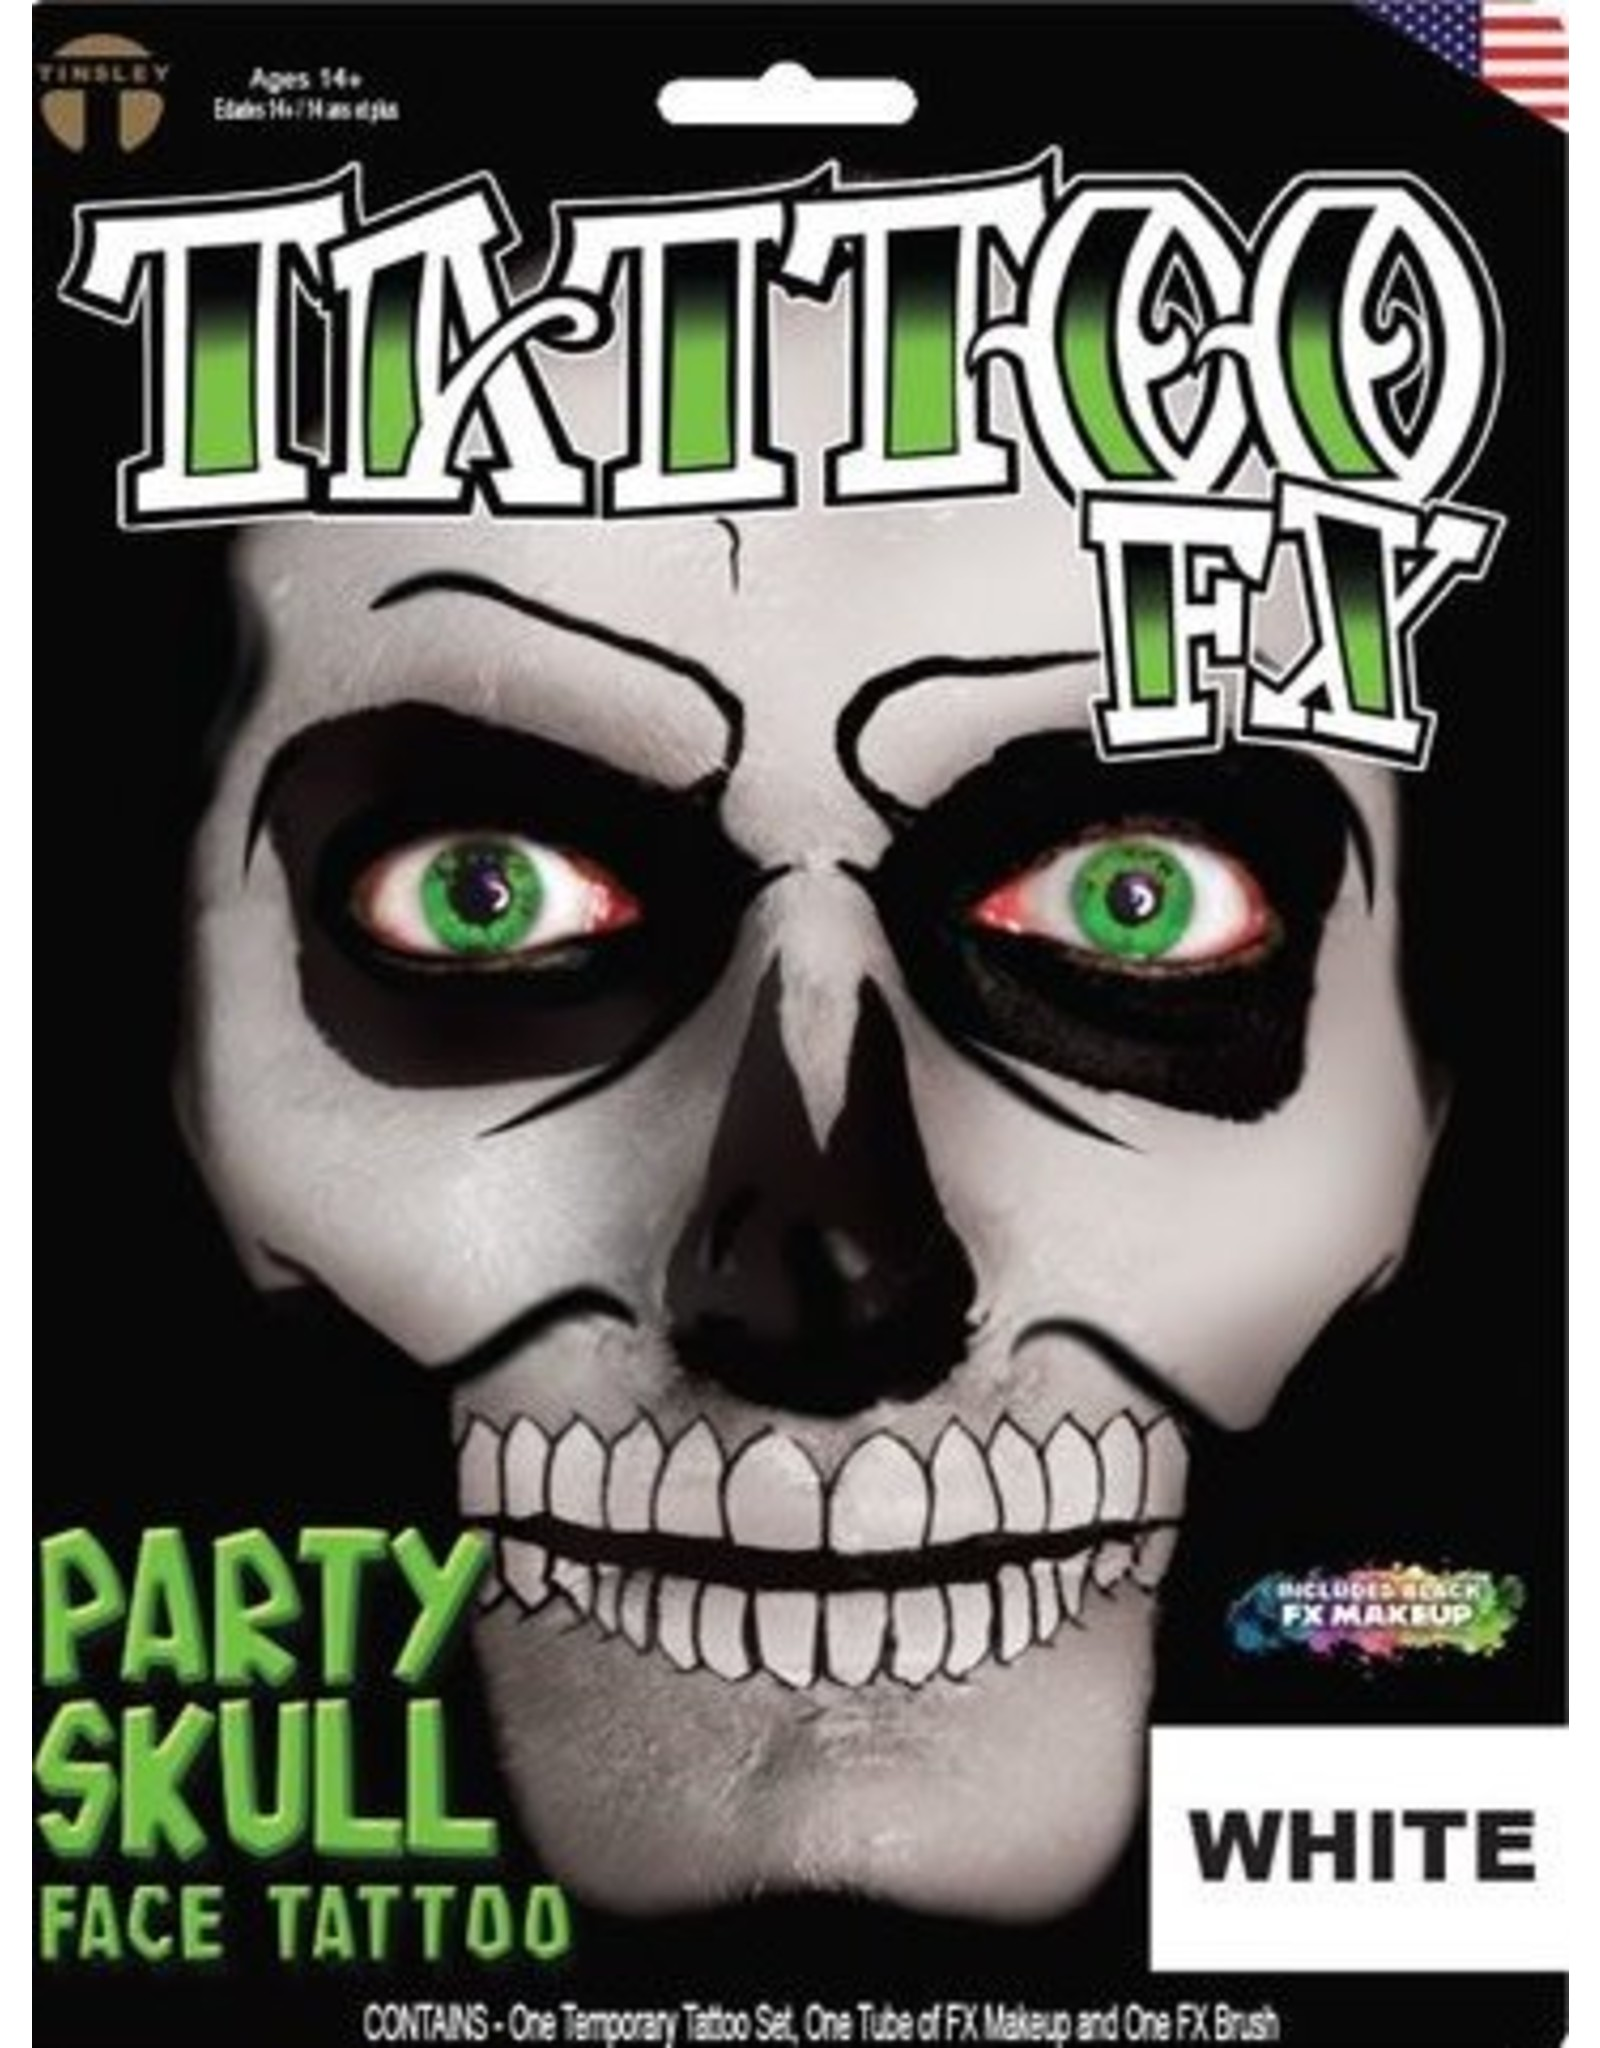 Tinsley Transfers Party Skull